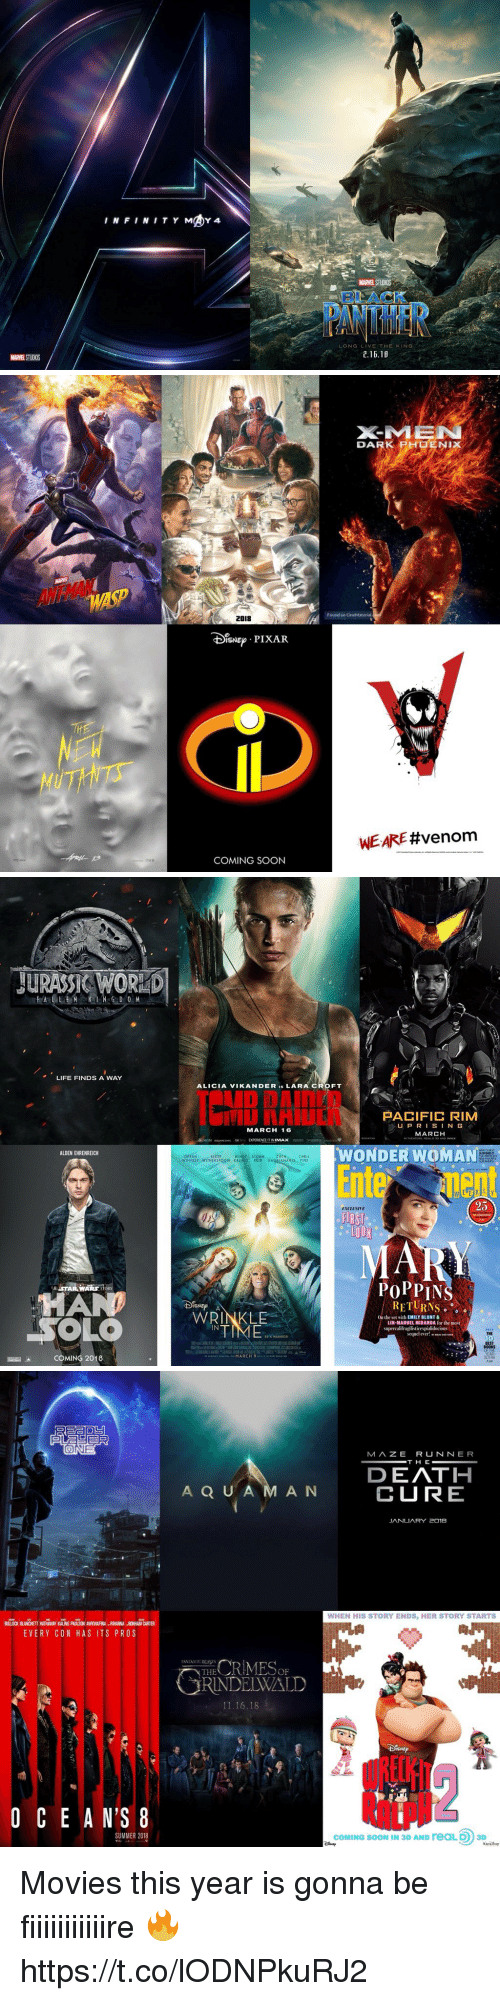 Oprah Winfrey: BLACK  LONG LIVE THE KING  .16.18  MARVEL STUDIOS   DA R K  PH □E N IX  /./A  WASP  2018  IsNEPIXAR  WE ARE #venom  COMING SOON   JURASS& WOR  LIFE FINDS A WAY  ALICIA VIKANDER IS LARA CROFT  ID DAInrD  IU NHIUIN PACIFIC RIM  UPRISIN G  MARCH  MARCH 16  IN THEATERS  MGM soUARE ENK  EXPERIENCE IT INIMAXR  WONDER WOMAN  Entenent  ALDEN EHRENREICH  SEQUEL  OPRAH  WINFREY WITHERSPOON KALING REID GALIEIANAKIS PINE  25  EXCLUSIVE  FIRST  。100 。  MAN  PoPPIN  I RETURNS 。  WRINKLE  On the set with EMILY BLUNT&  LIN-MANUEL MIRANDA for the most  IN  supercalifragilisticexpialidocious  sequel ever! .ANT  BEST  COMING 2018  FAR   MAZE RUNNER  DEATH  CURE  A Q U A M A N  JANUARY 2o1e  WHEN HIS STORY ENDS, HER STORY STARTS  BULOCK BLANCHETT HATHAWAY KALING PAULSON AWKWAFINA RIHANNA BONHAM CARTER  EVERY CON HAS ITS PROS  THERIMEop  RINDELWALD  FANTASTICBEASTS  11.16.18  O C E A N'S 8  RlLpN  SUMMER 2018  COMING SOON IN 3D AND reaLD 3D Movies this year is gonna be fiiiiiiiiiiire 🔥 https://t.co/lODNPkuRJ2